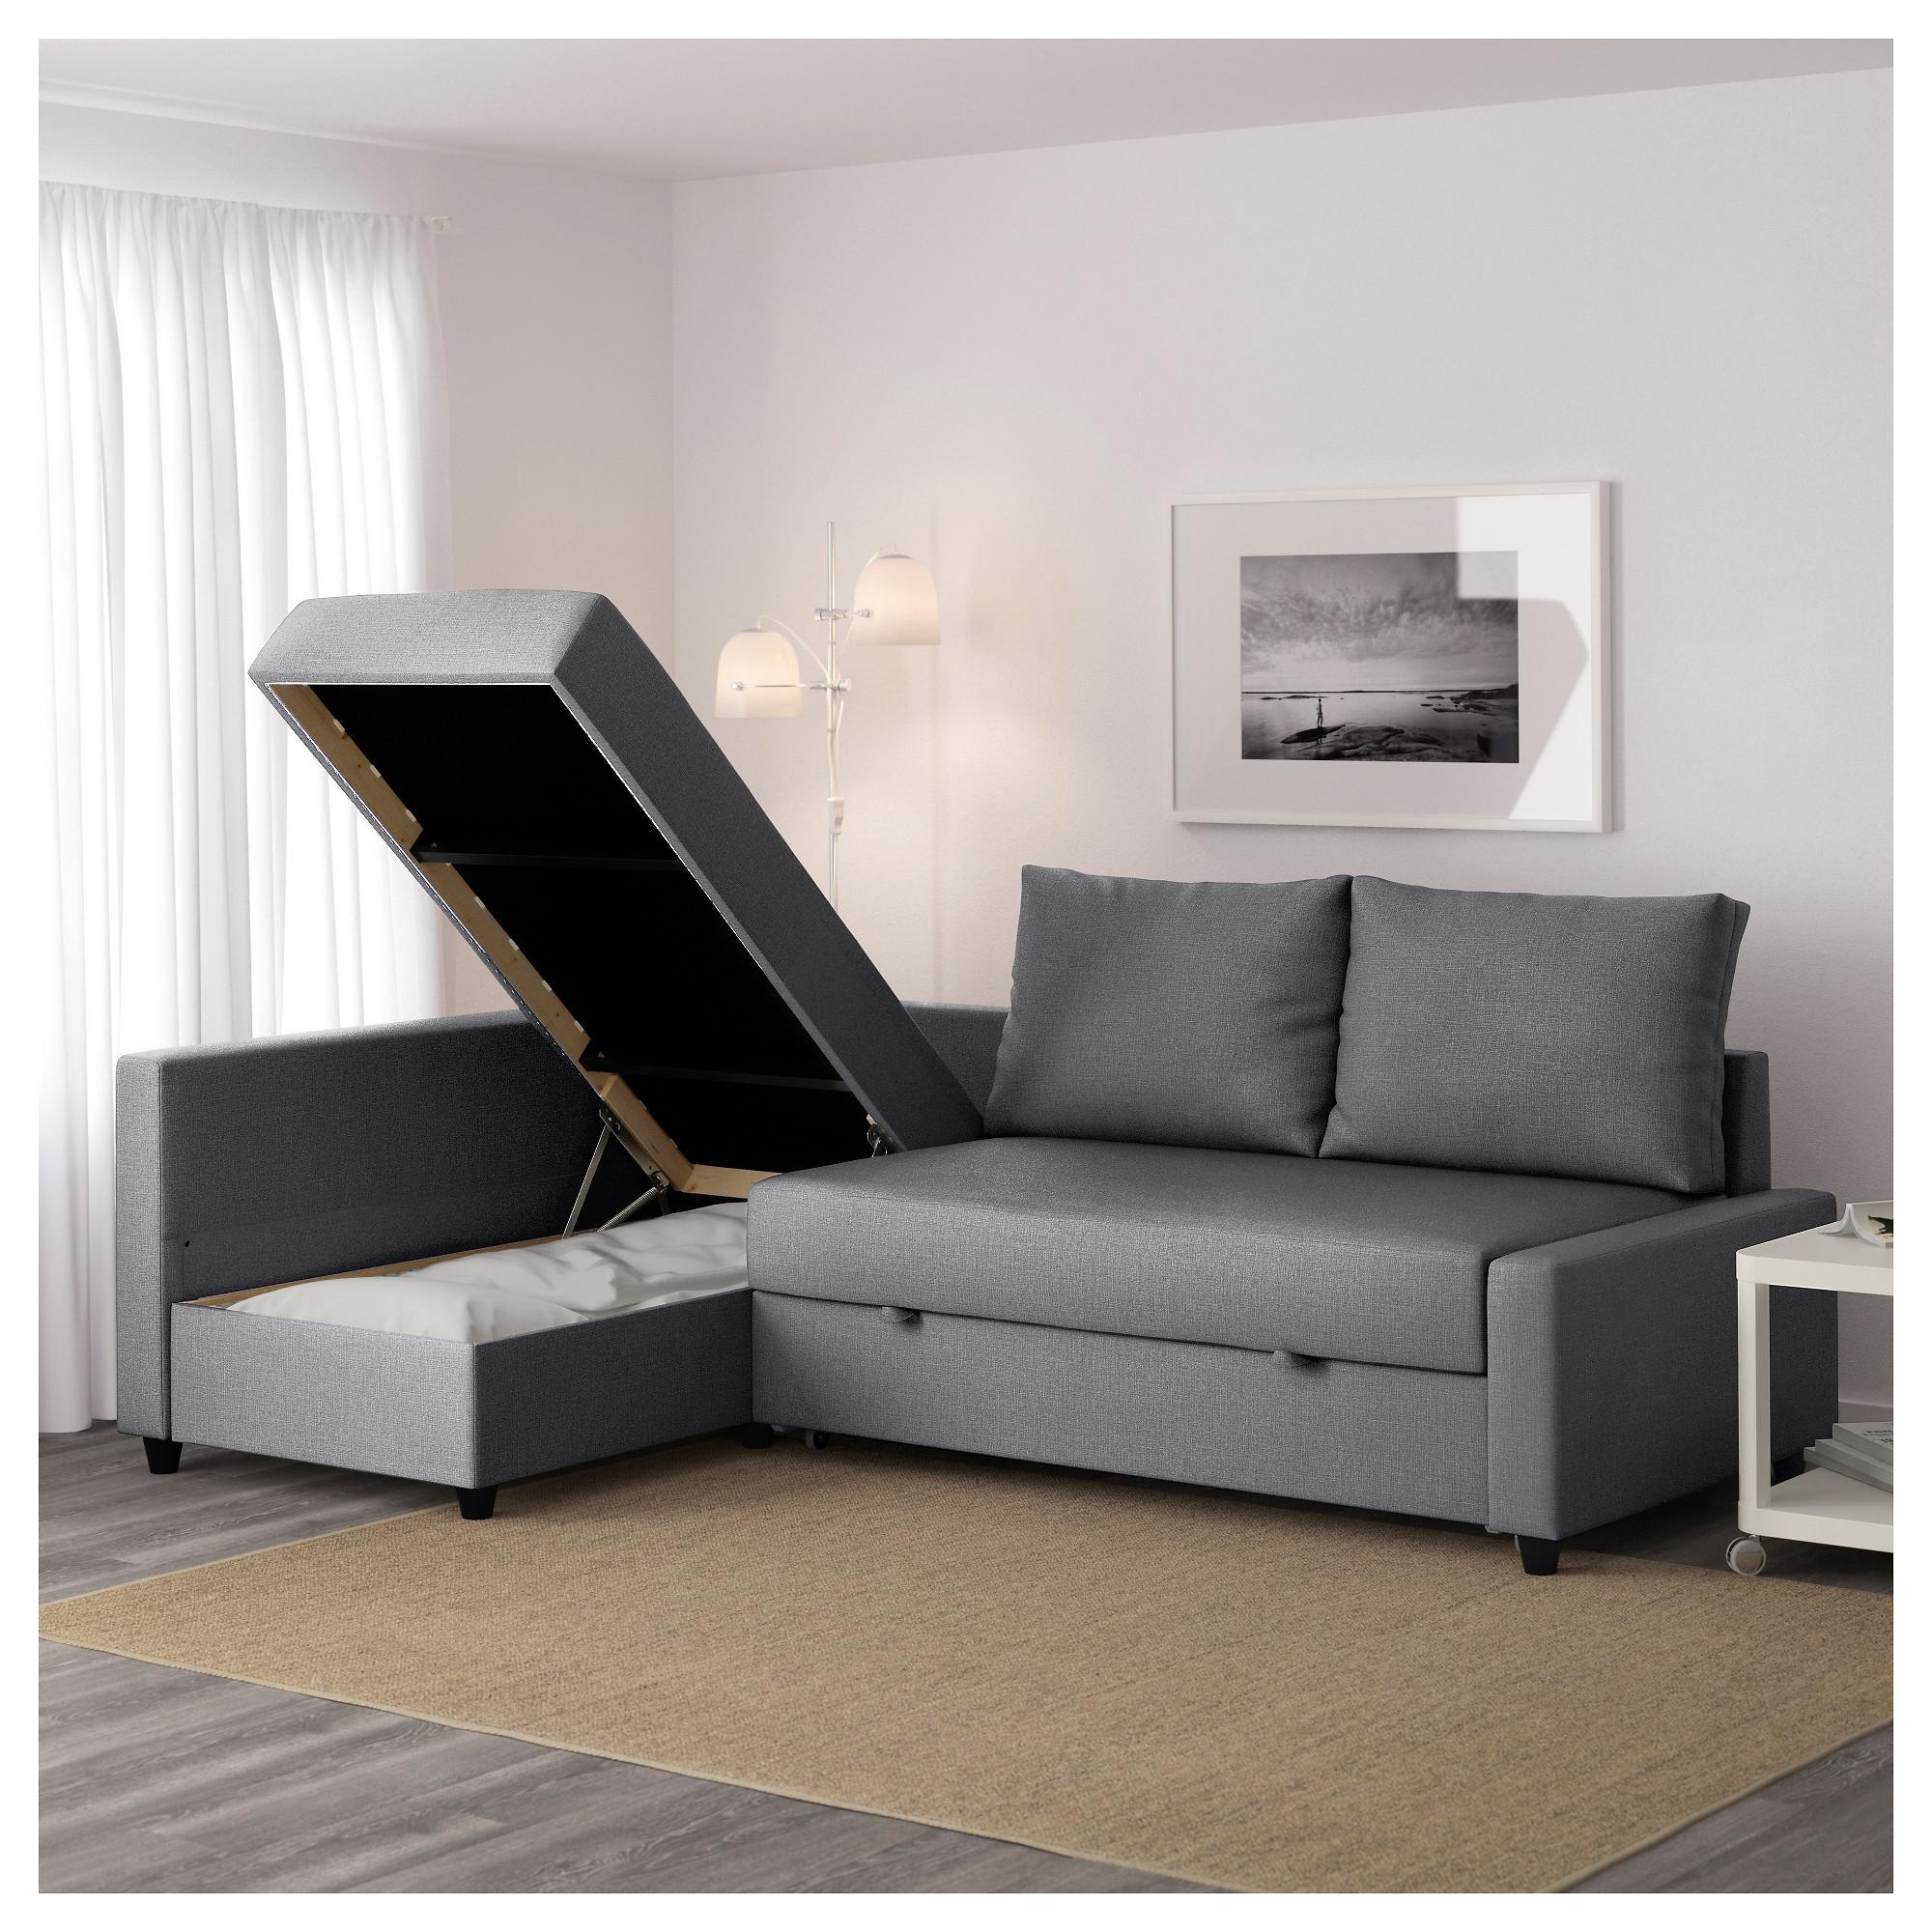 Friheten Corner Sofa Bed With Storage Skiftebo Dark Grey – Ikea With Storage Sofas Ikea (Image 13 of 20)